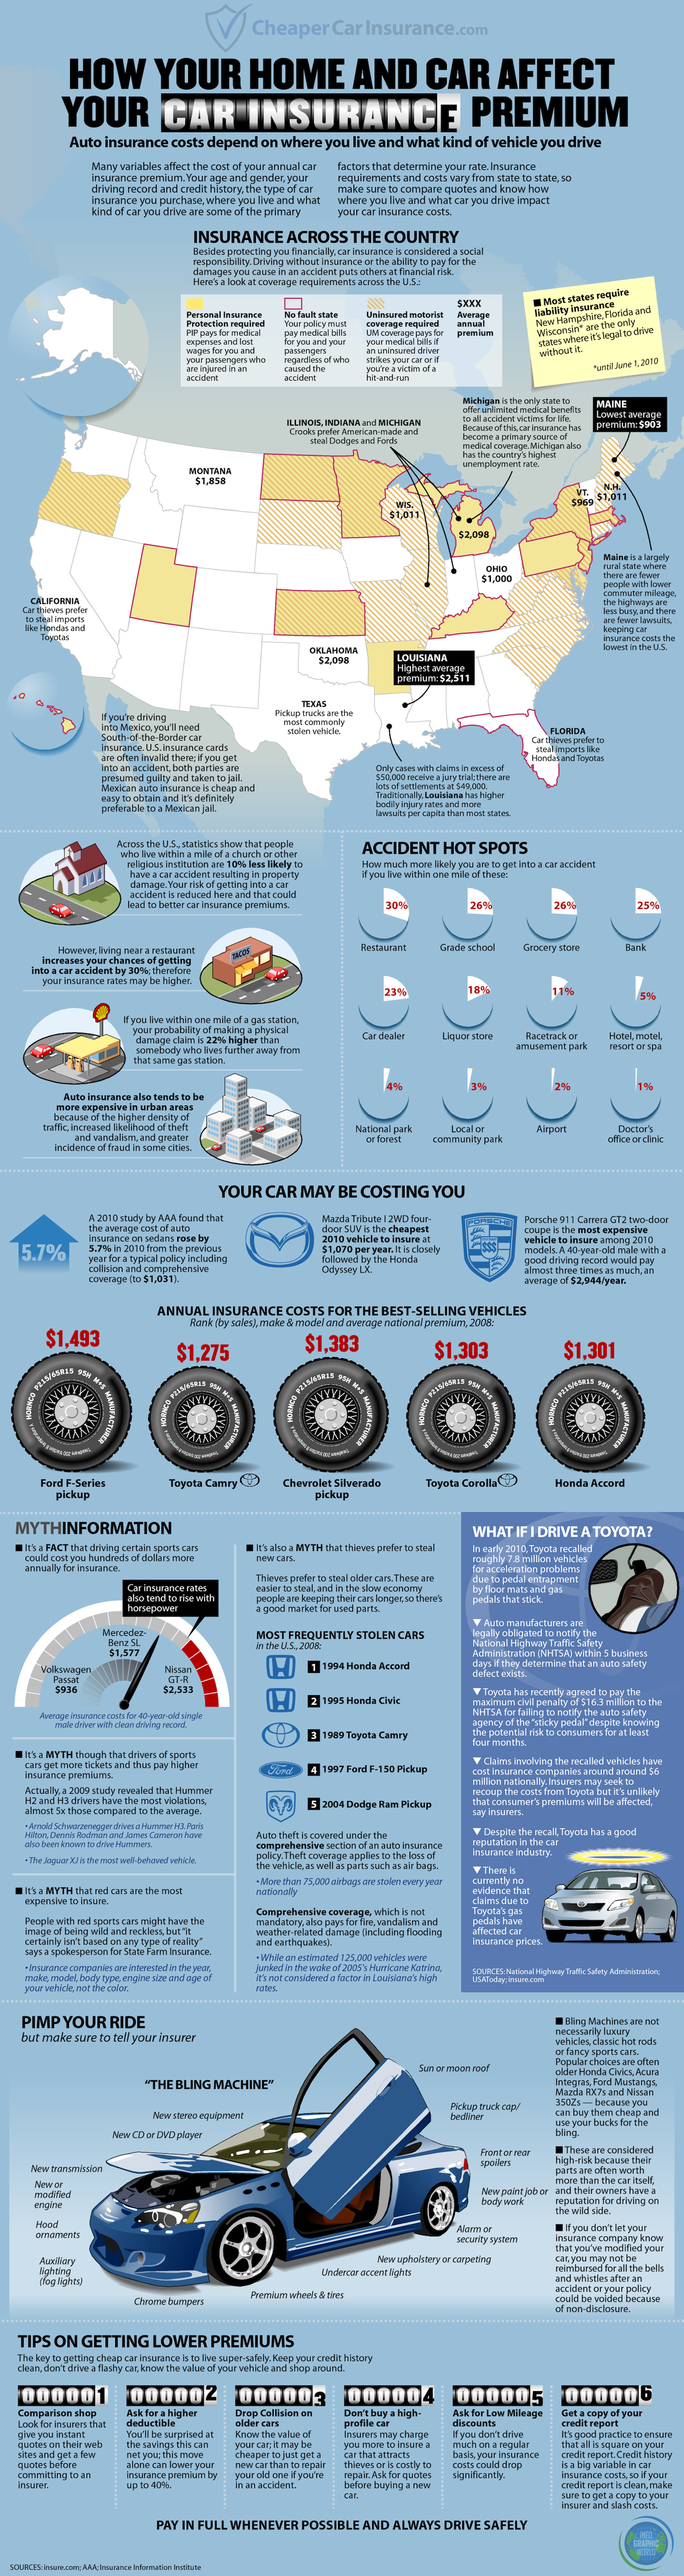 How your home & car affect your car insurance premium.